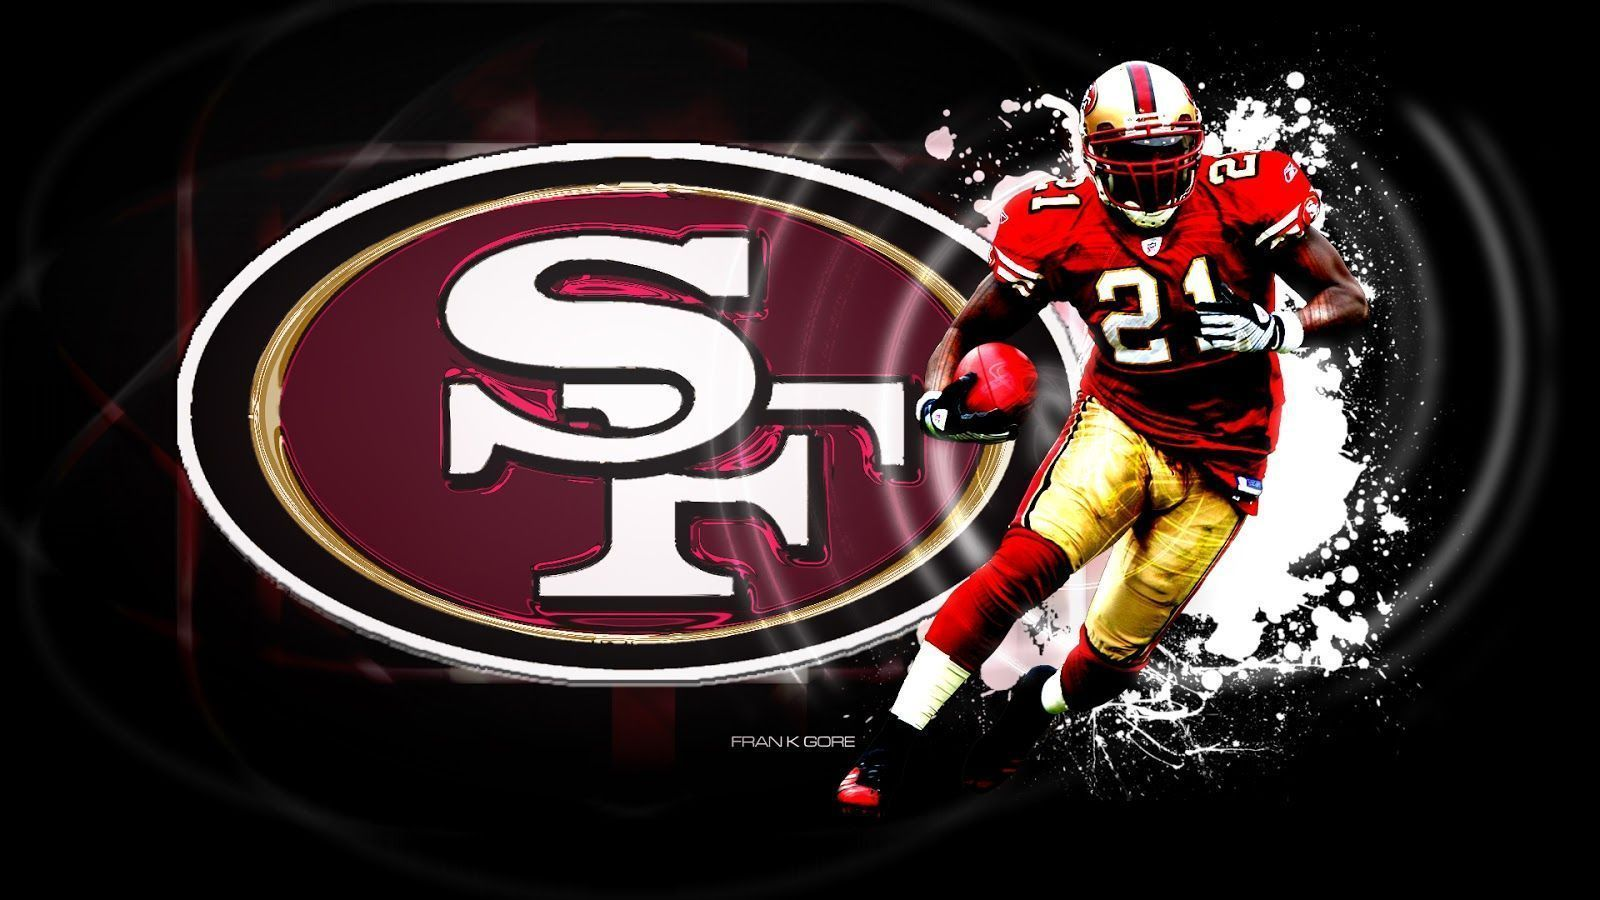 Free 49ers wallpapers your phone wallpaper cave all wallpapers free 49ers wallpapers your phone wallpaper cave forty ninerssan francisco voltagebd Gallery